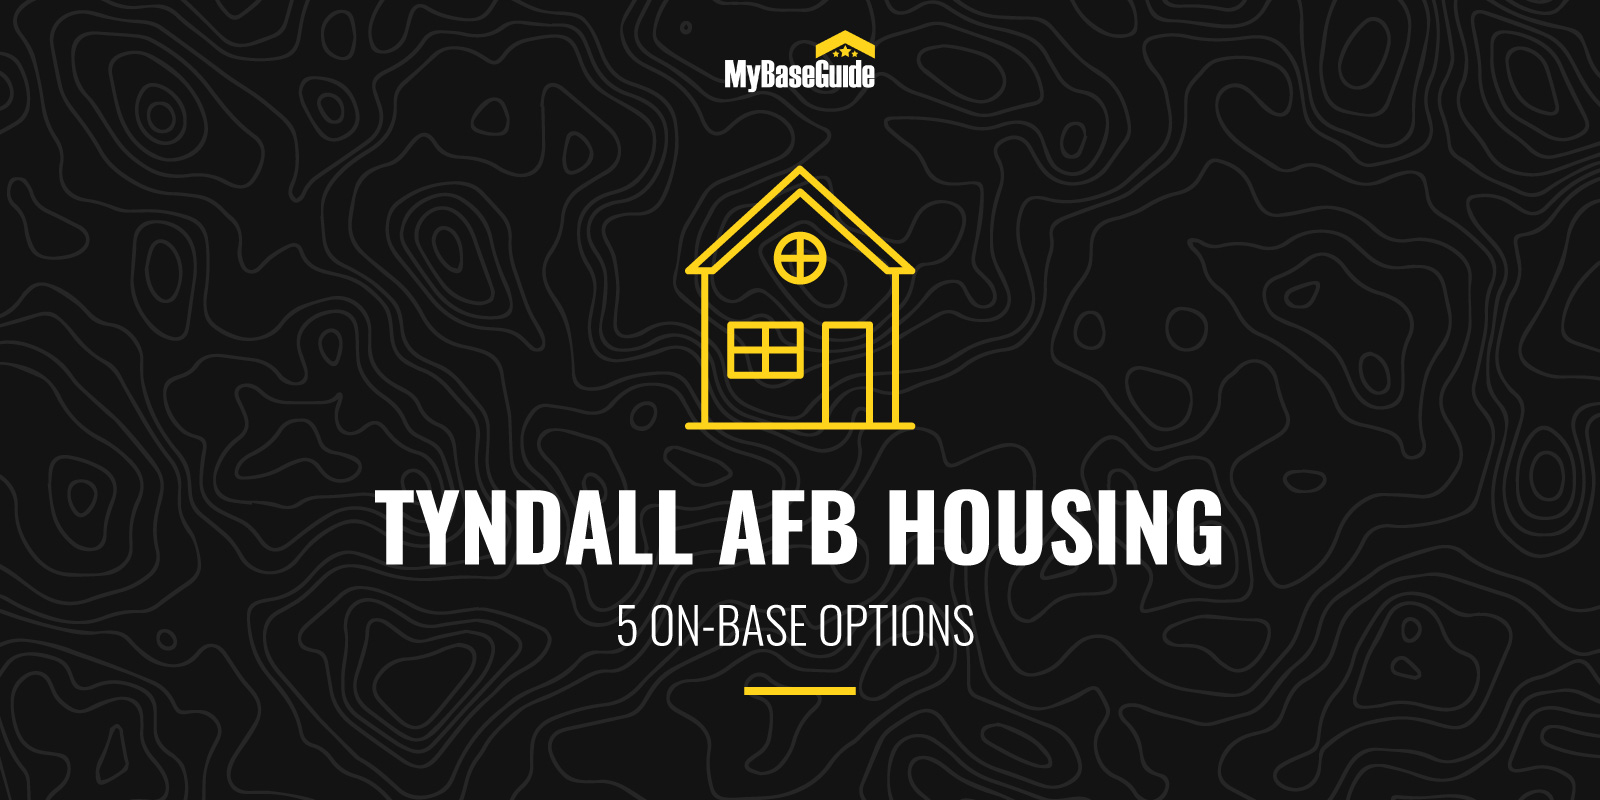 Tyndall AFB Housing: 5 On-Base Options